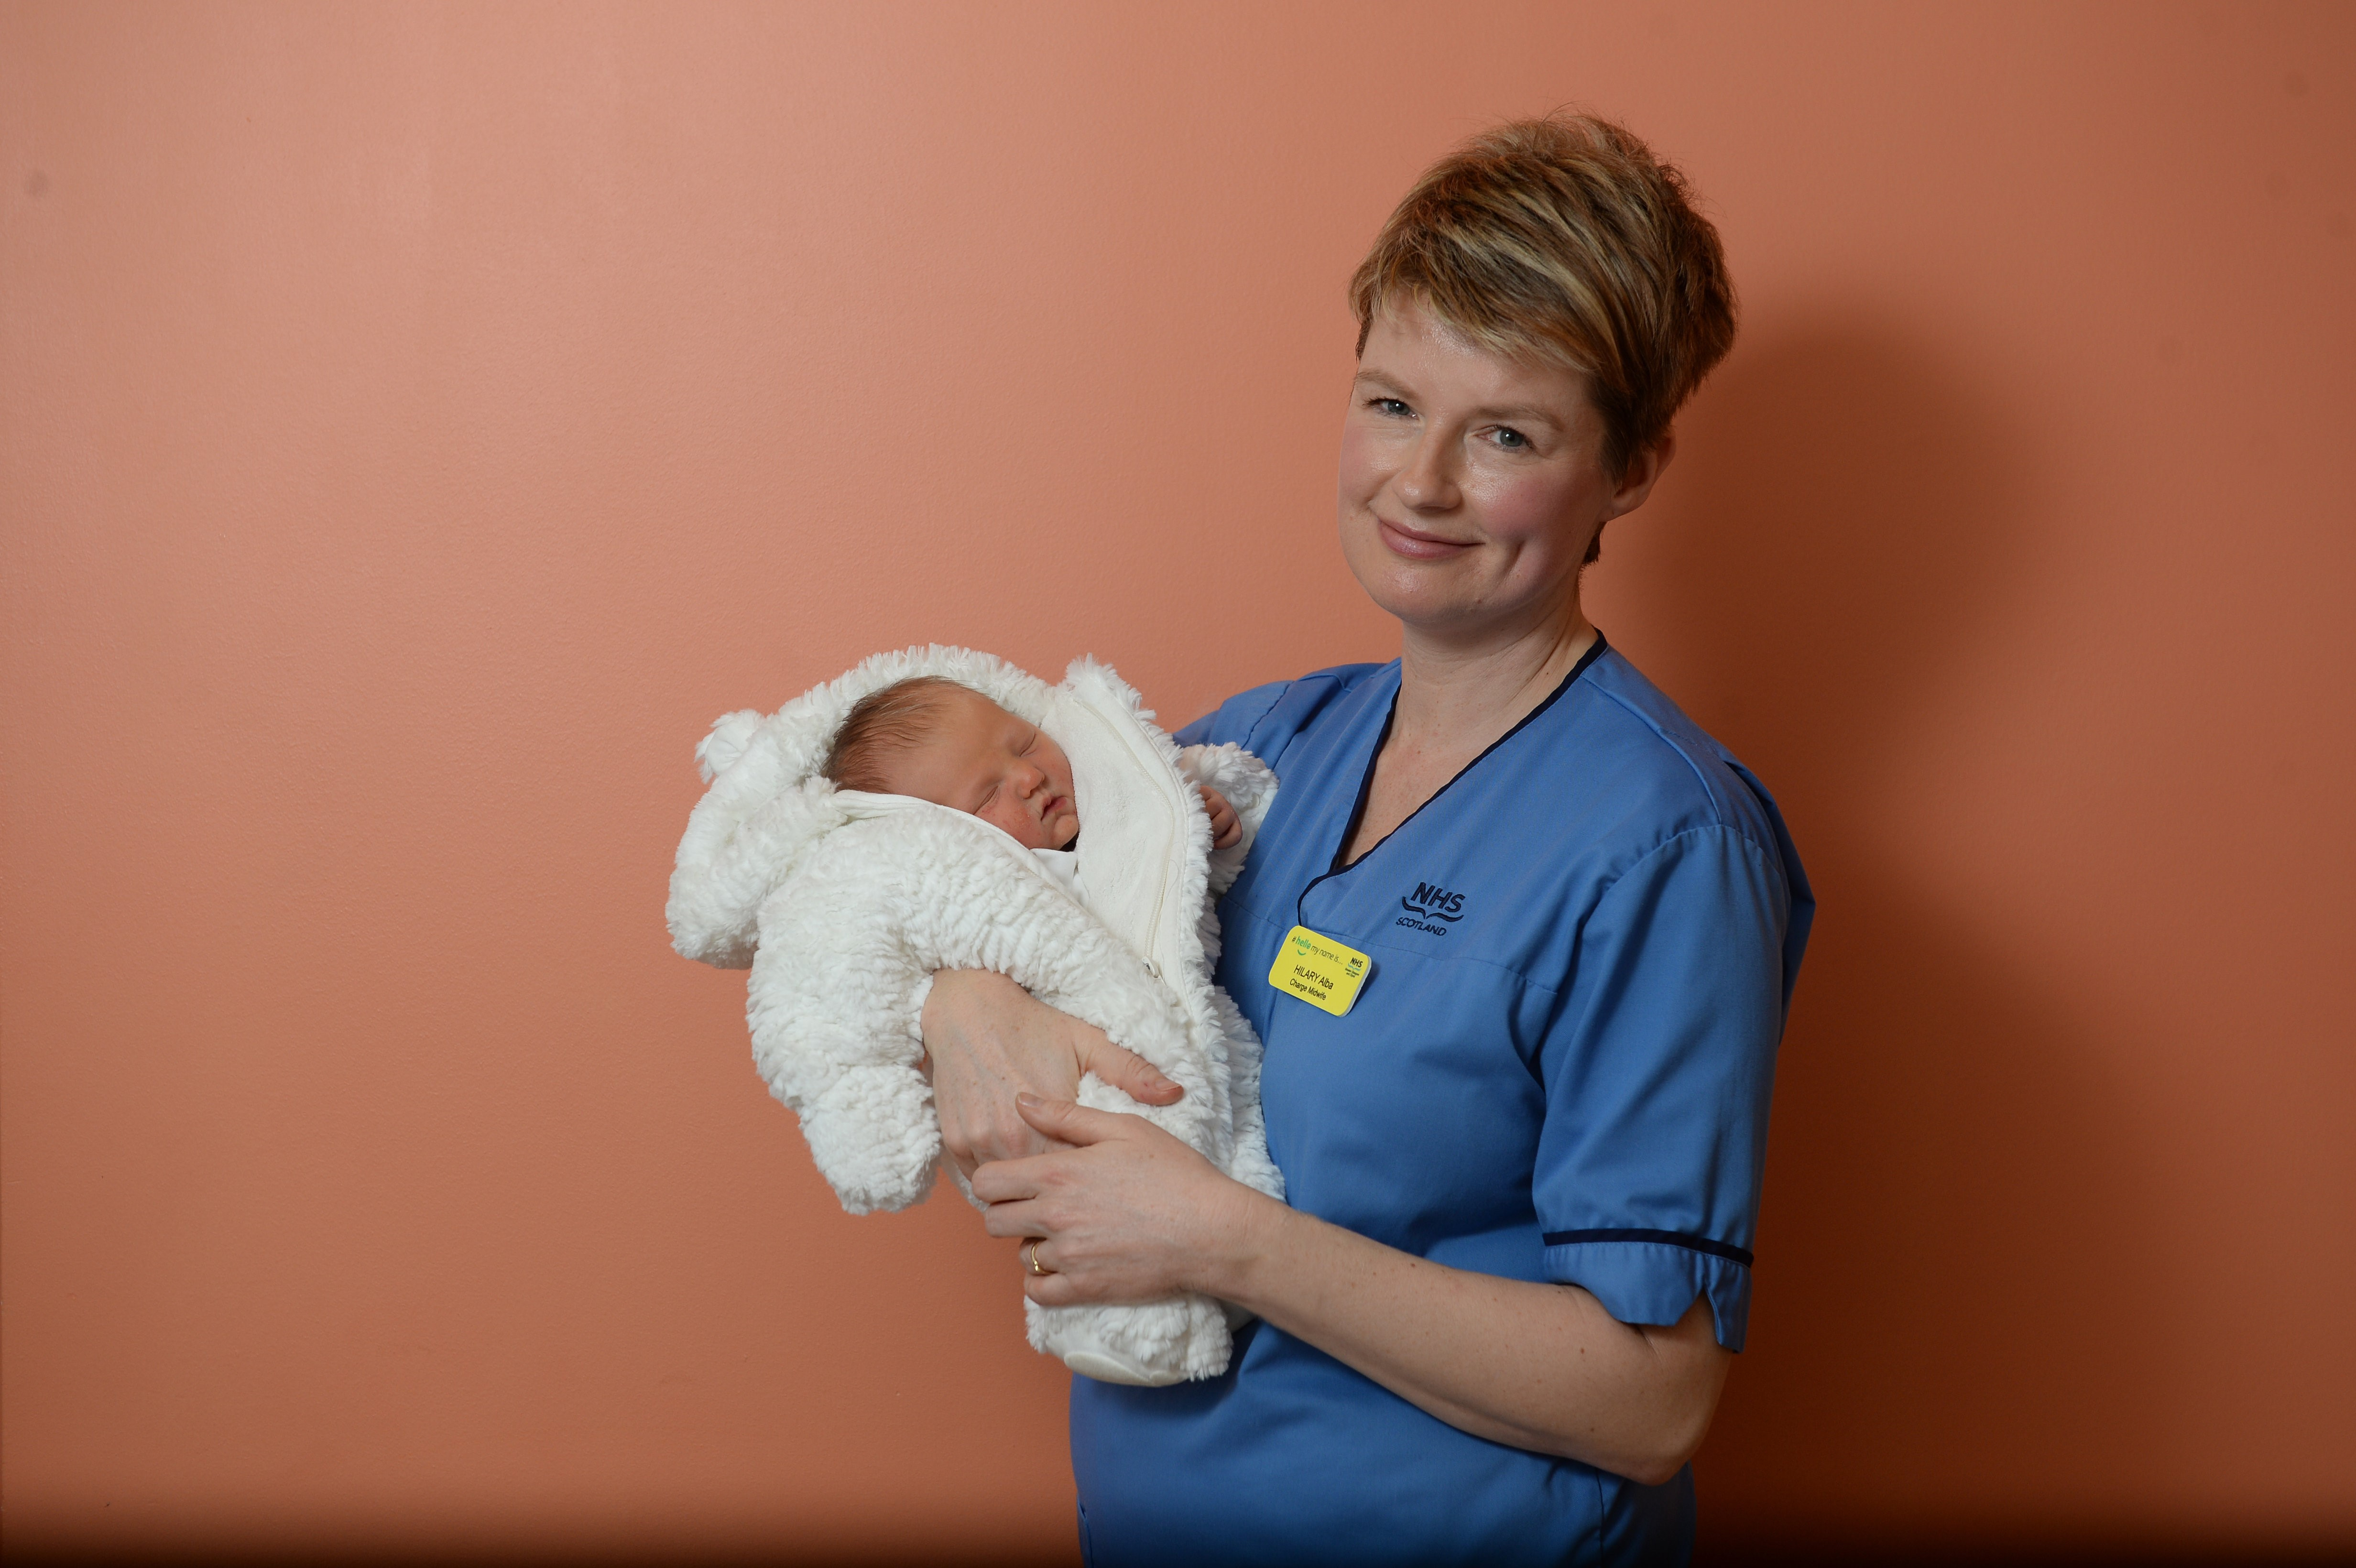 Glasgow midwife selected to be one of the first Queen's Nurses in almost 50 years